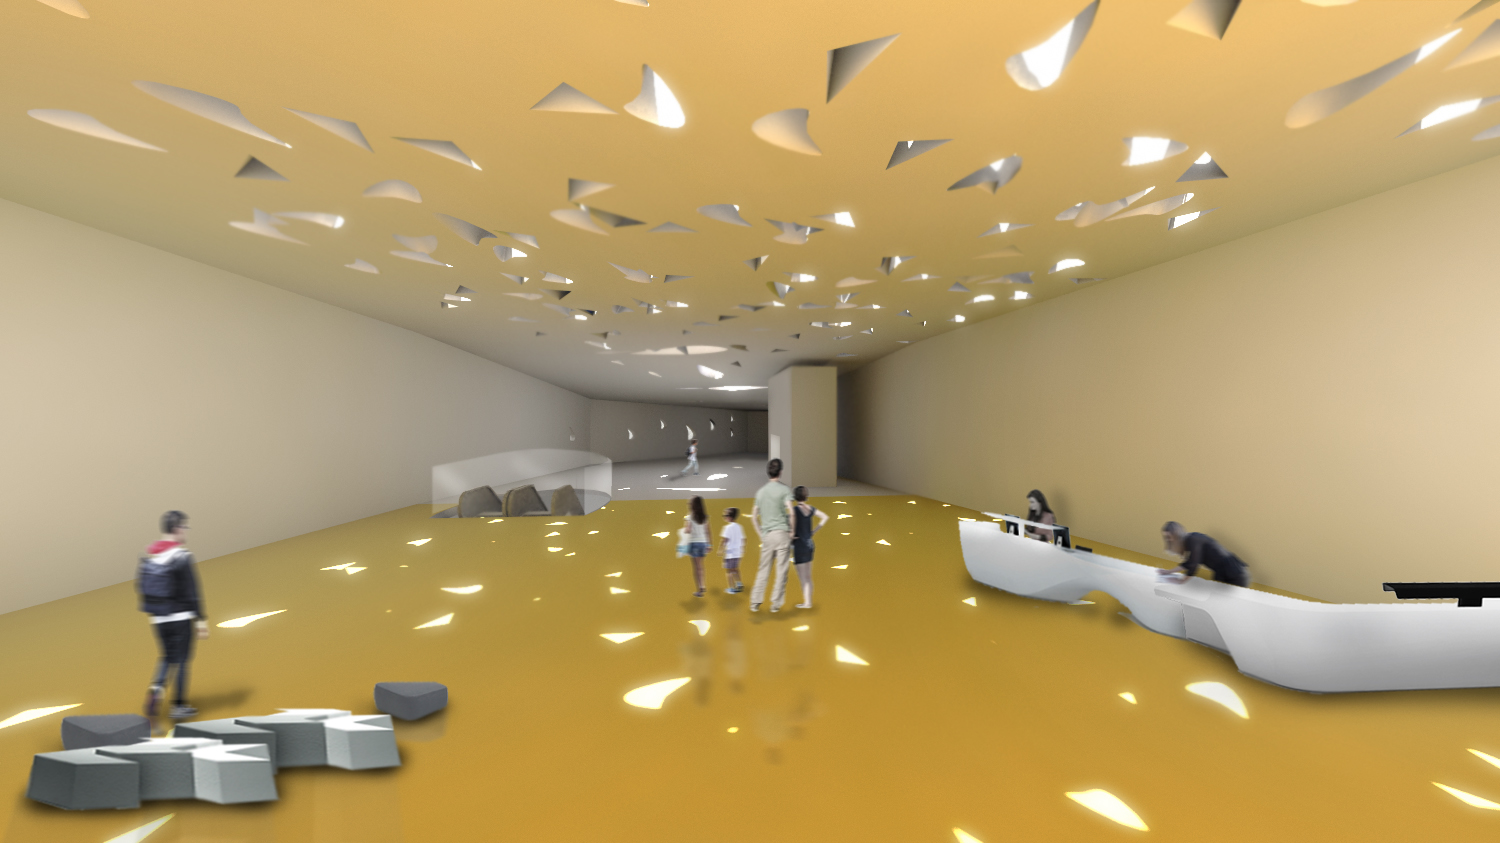 Daylighting design in other dimensions: Emotion and Time (M